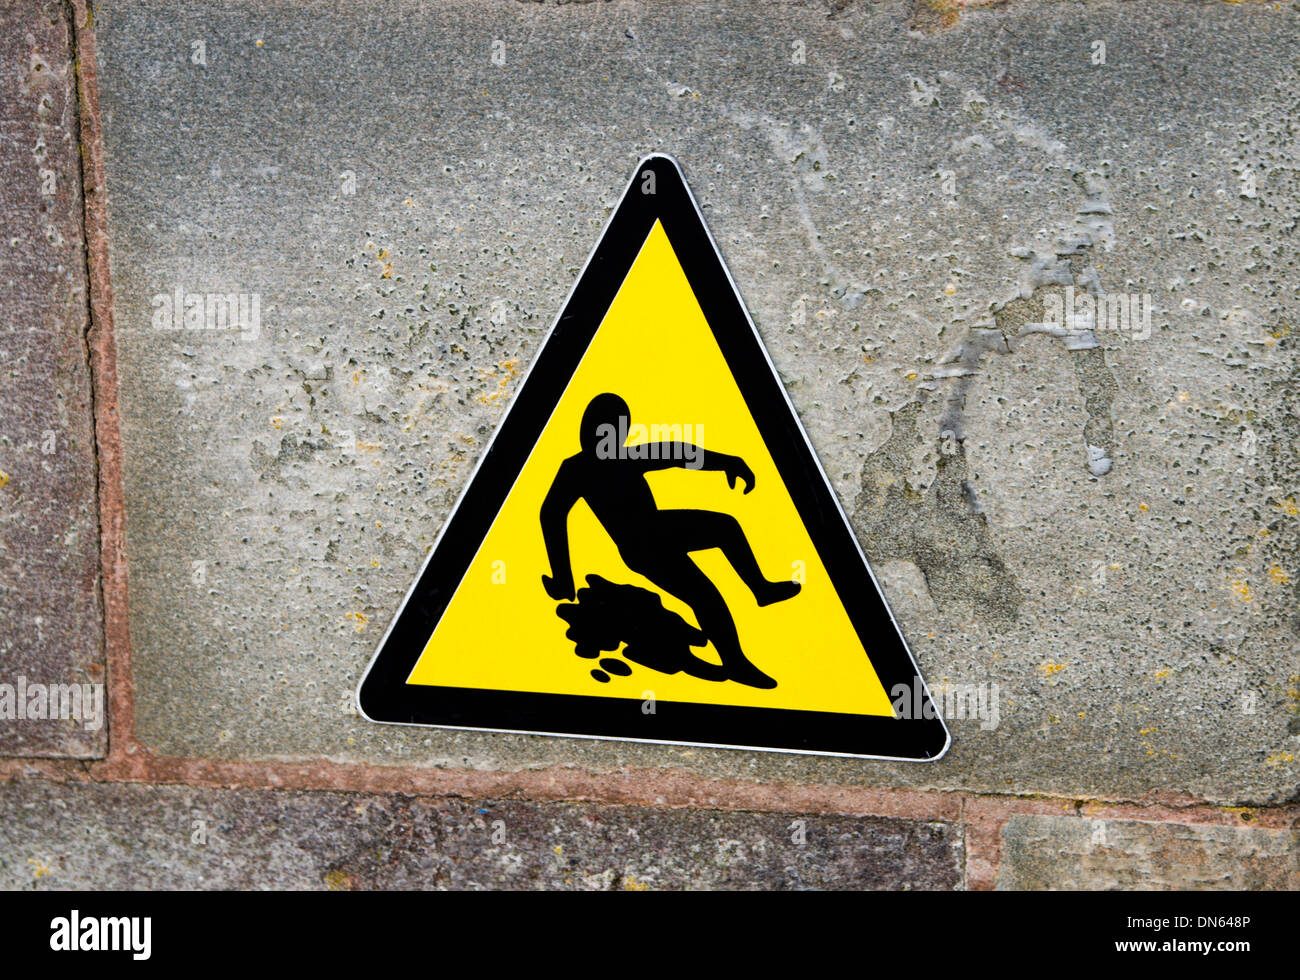 Warning sign for slippery surface, Cardiff Bay, Wales. - Stock Image